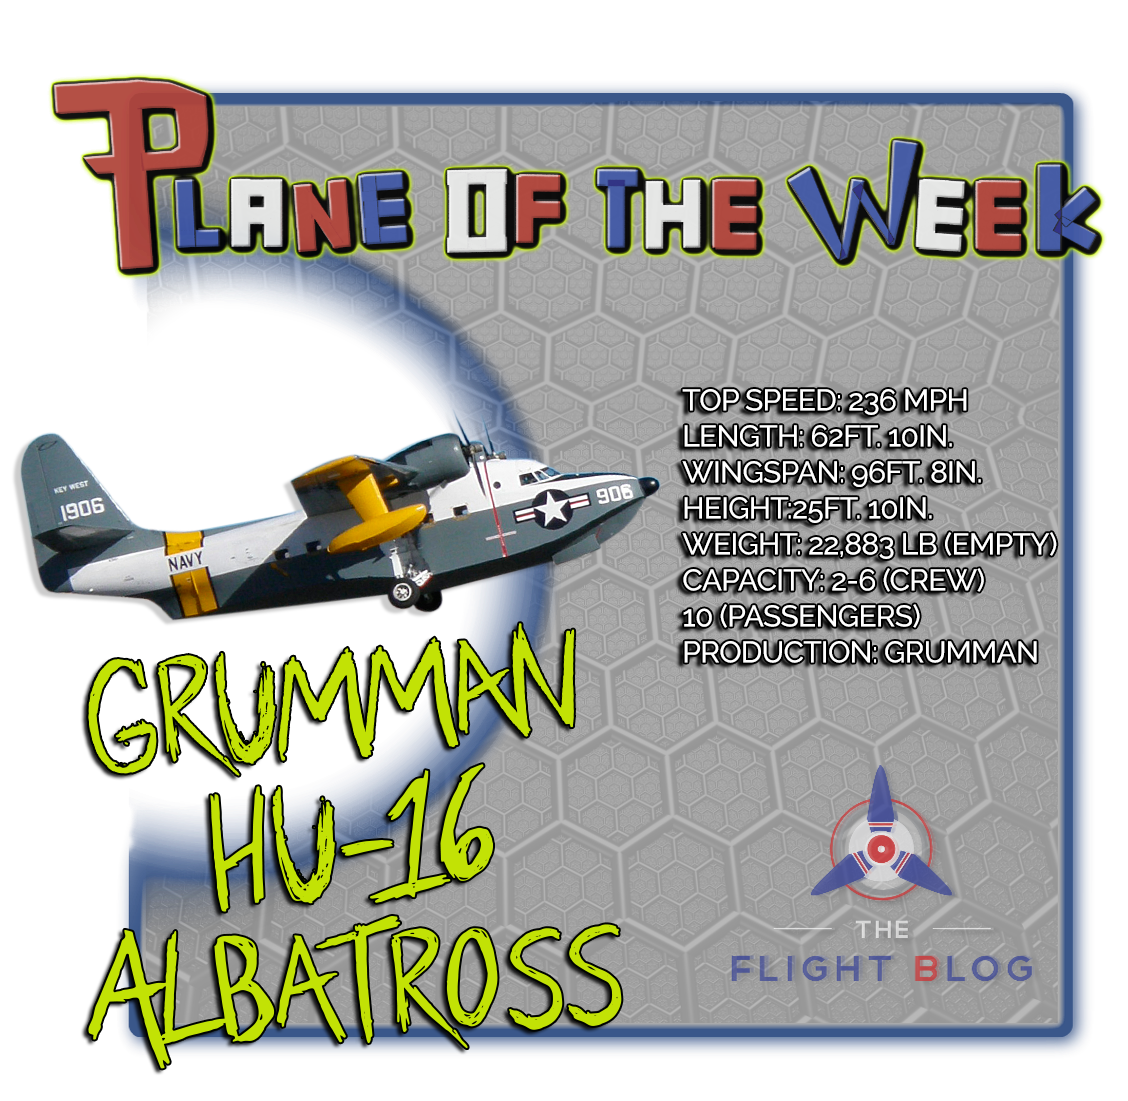 albatross, grumman albatross, grumman HU-16 albatross, plane of the week, the flight blog, albatross specs, plane specs